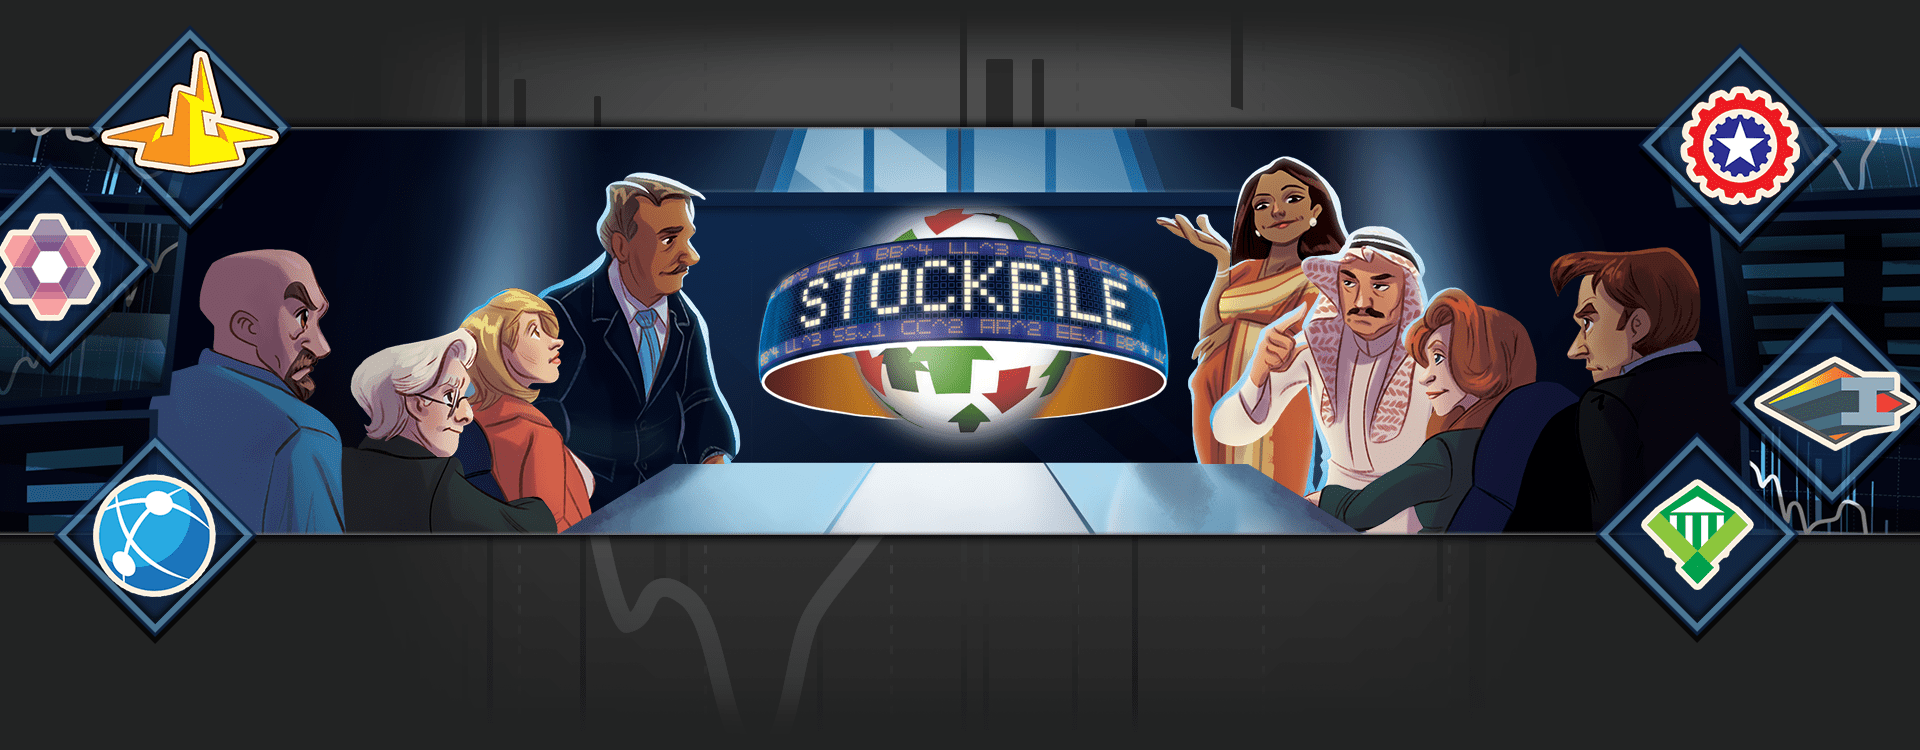 Stockpile header image (5 player family economics game)